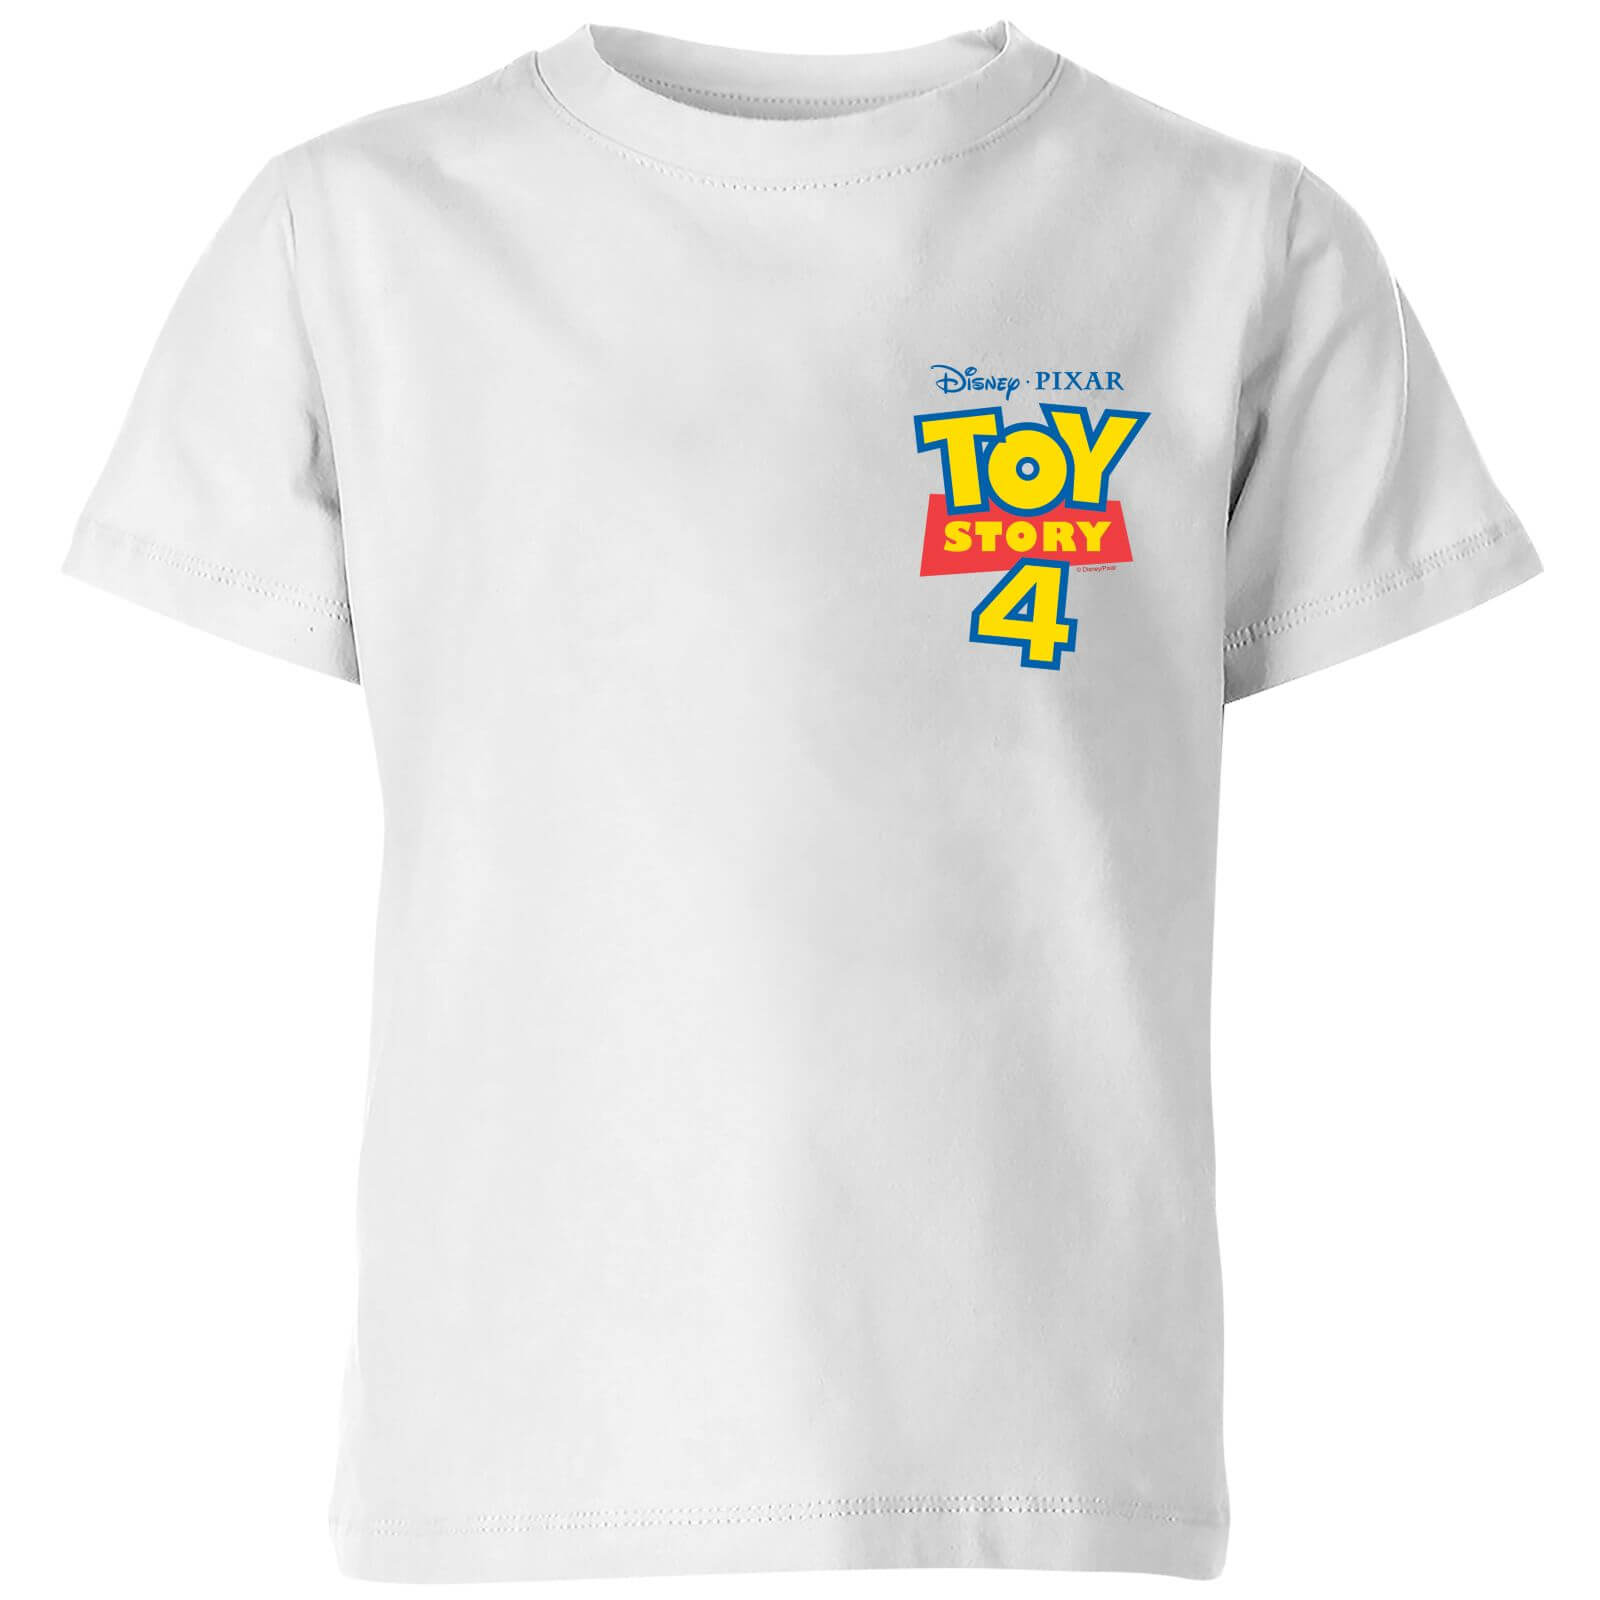 Toy Story 4 Pocket Logo Kids' T-Shirt - White - 9-10 años - Blanco de Pixar